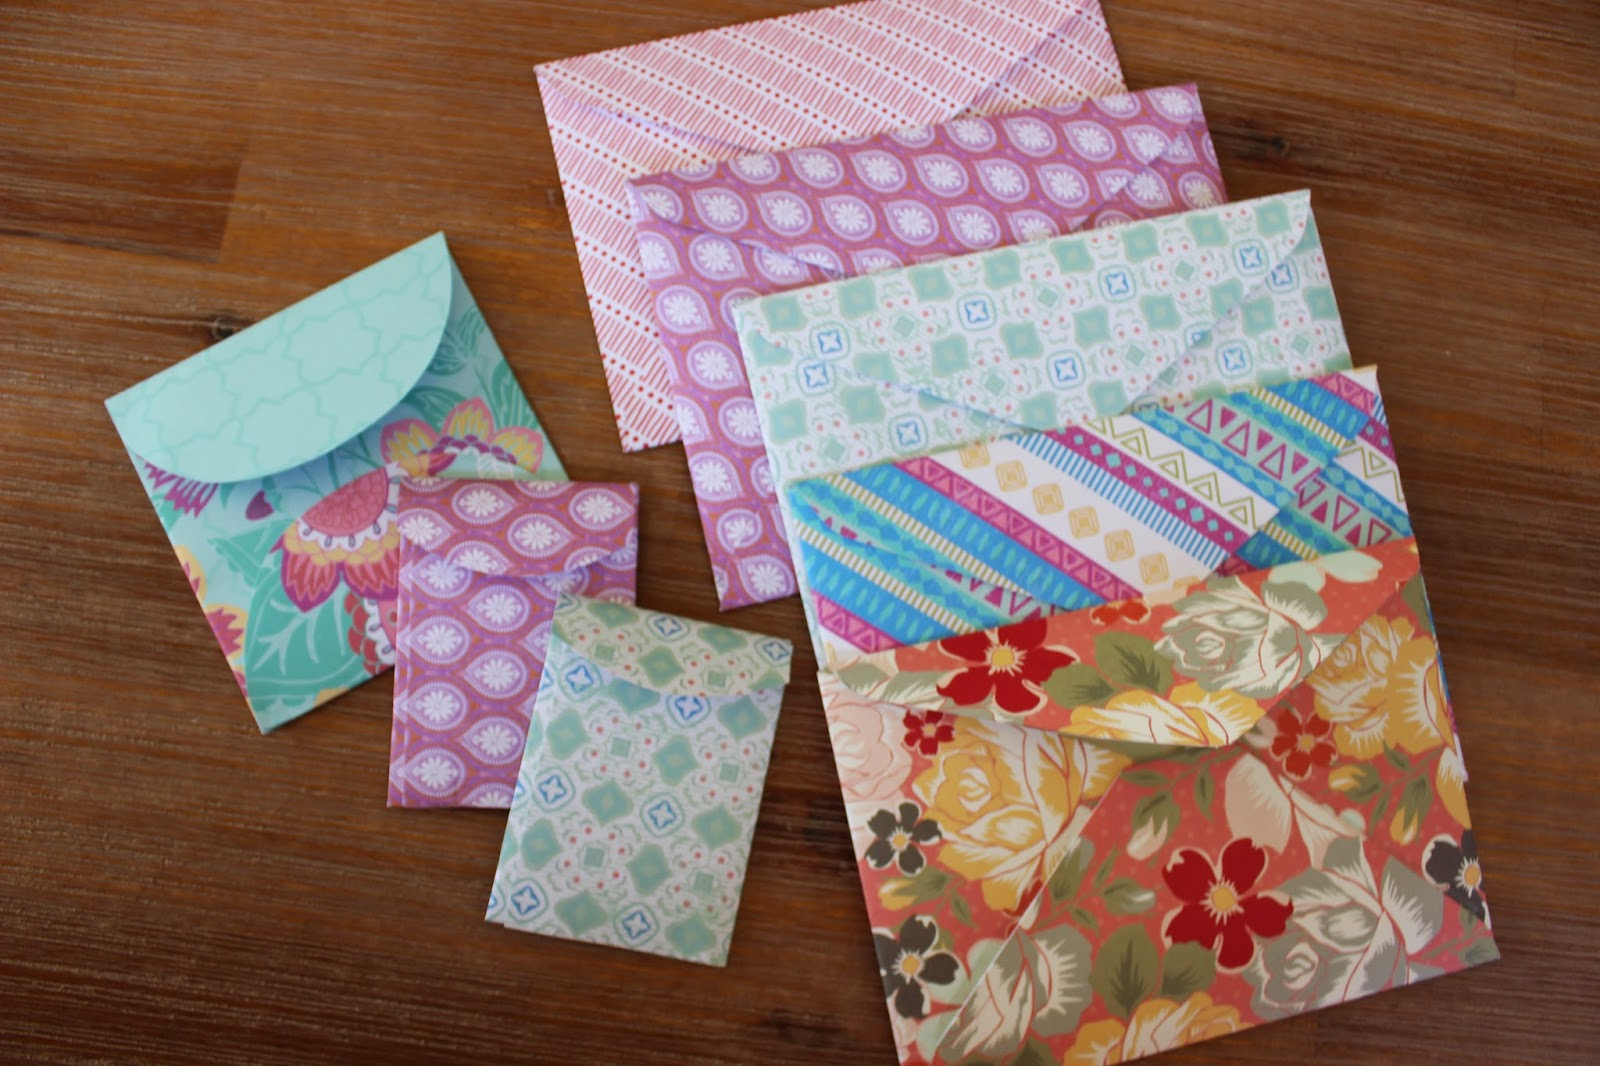 i would love to see your diy envelopes do you follow me on instagram if not you can click the link in the sidebar or search crashandcreatebysimone and - Decorative Envelopes